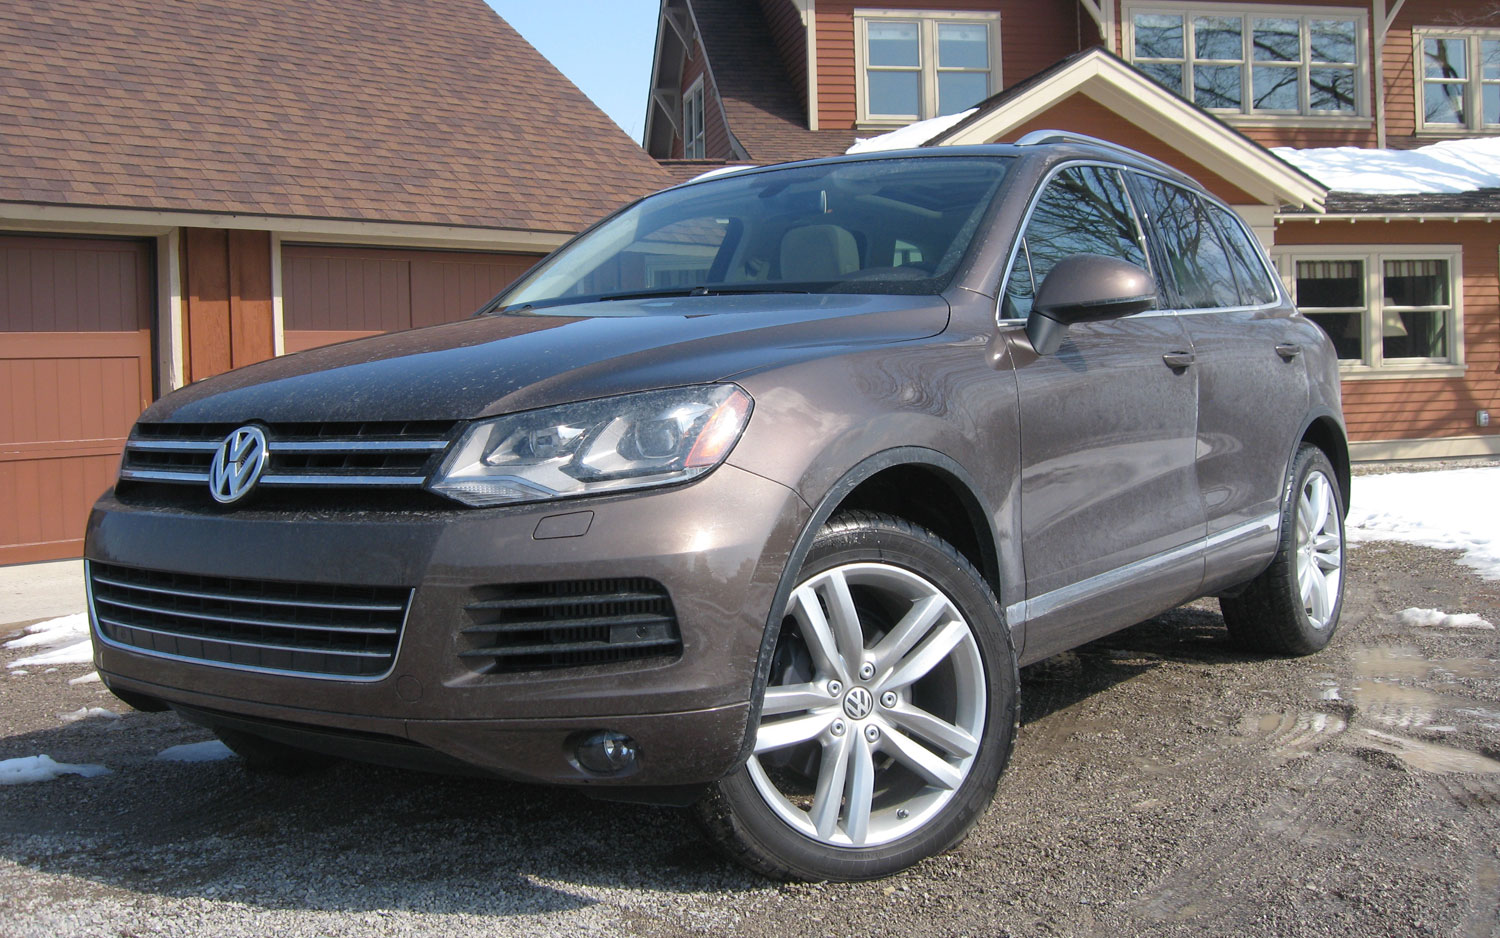 2011 Volkswagen Touareg Tdi Executive Front Left View1